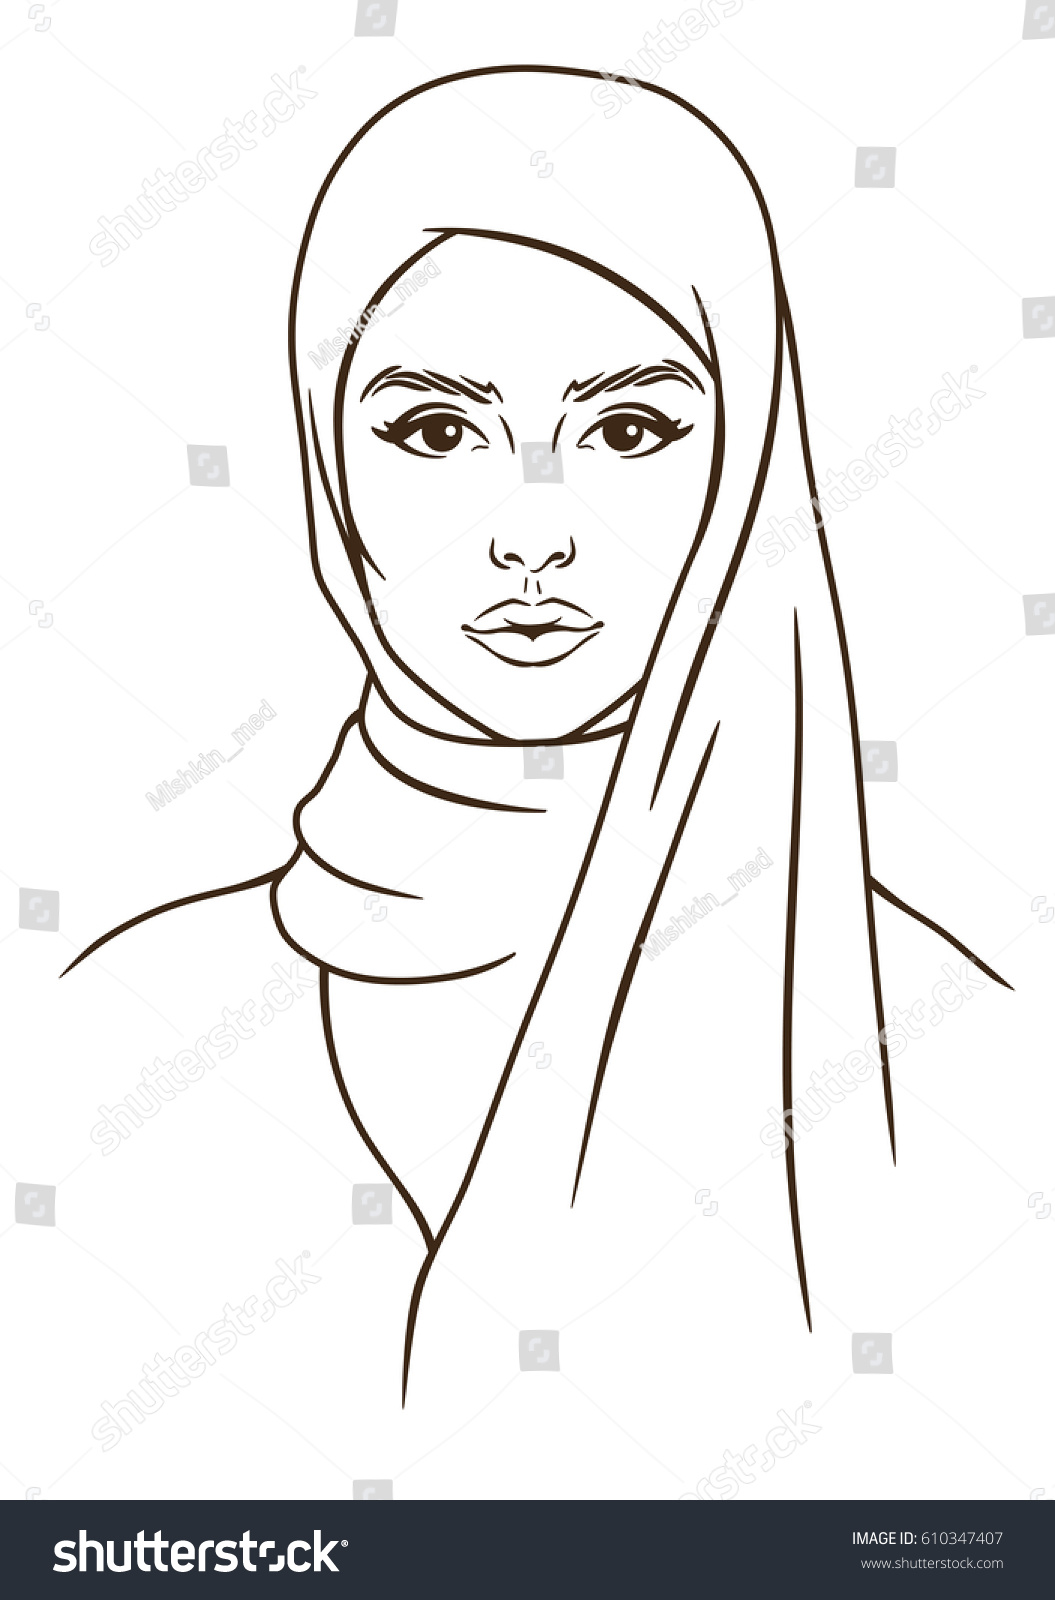 how to draw a head scarf